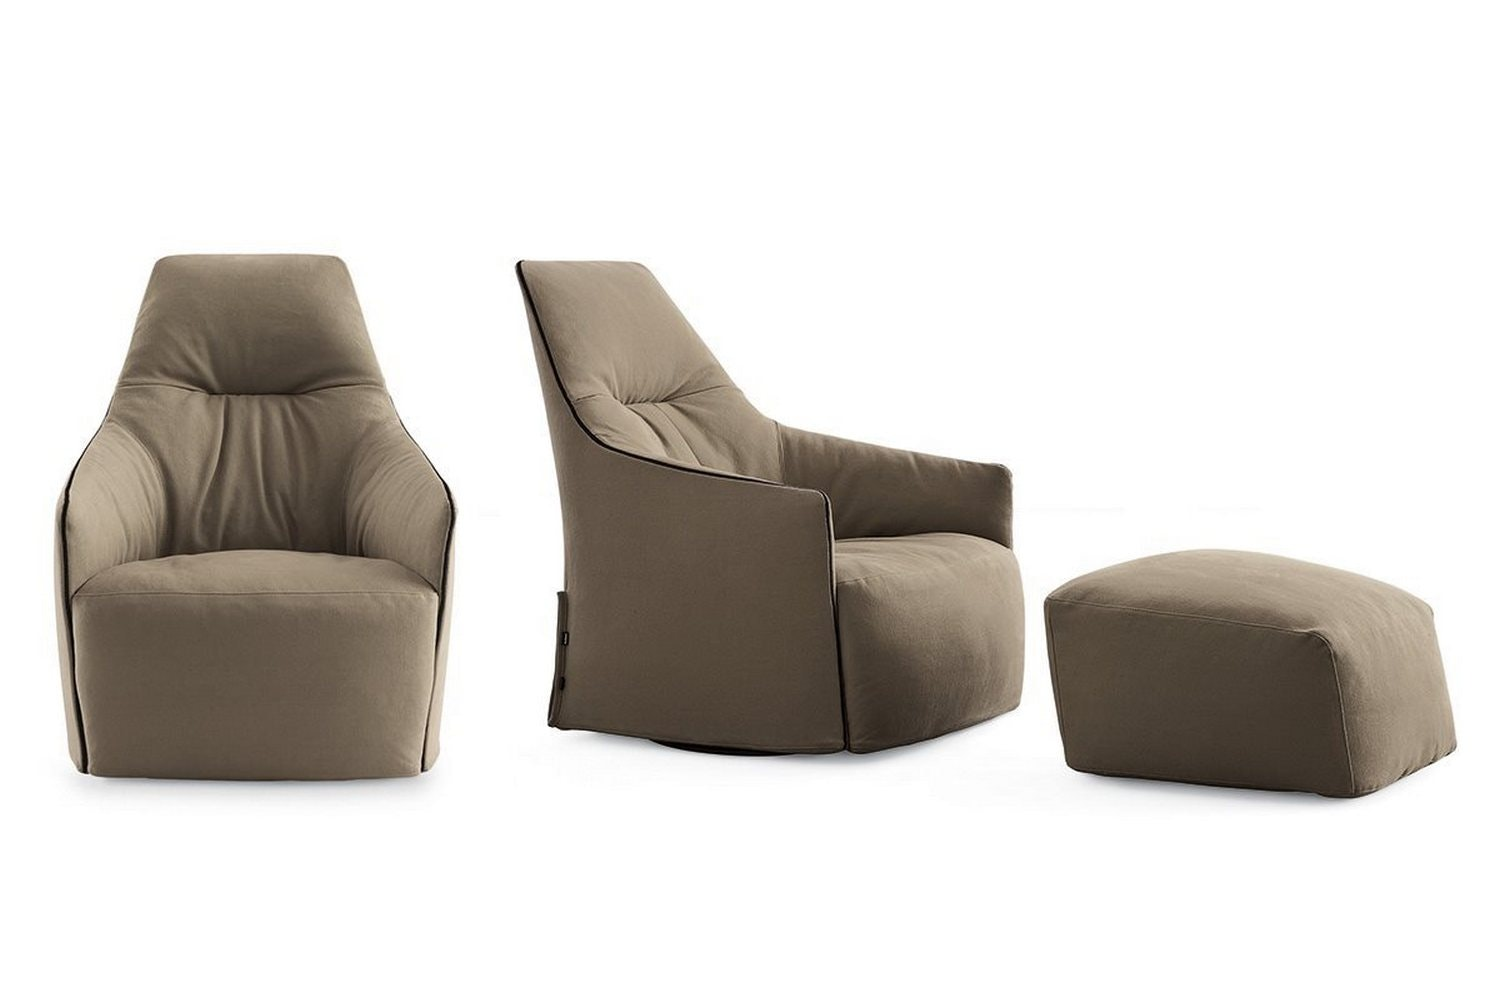 Santa Monica Lounge Ottoman by J.M. Massaud for Poliform